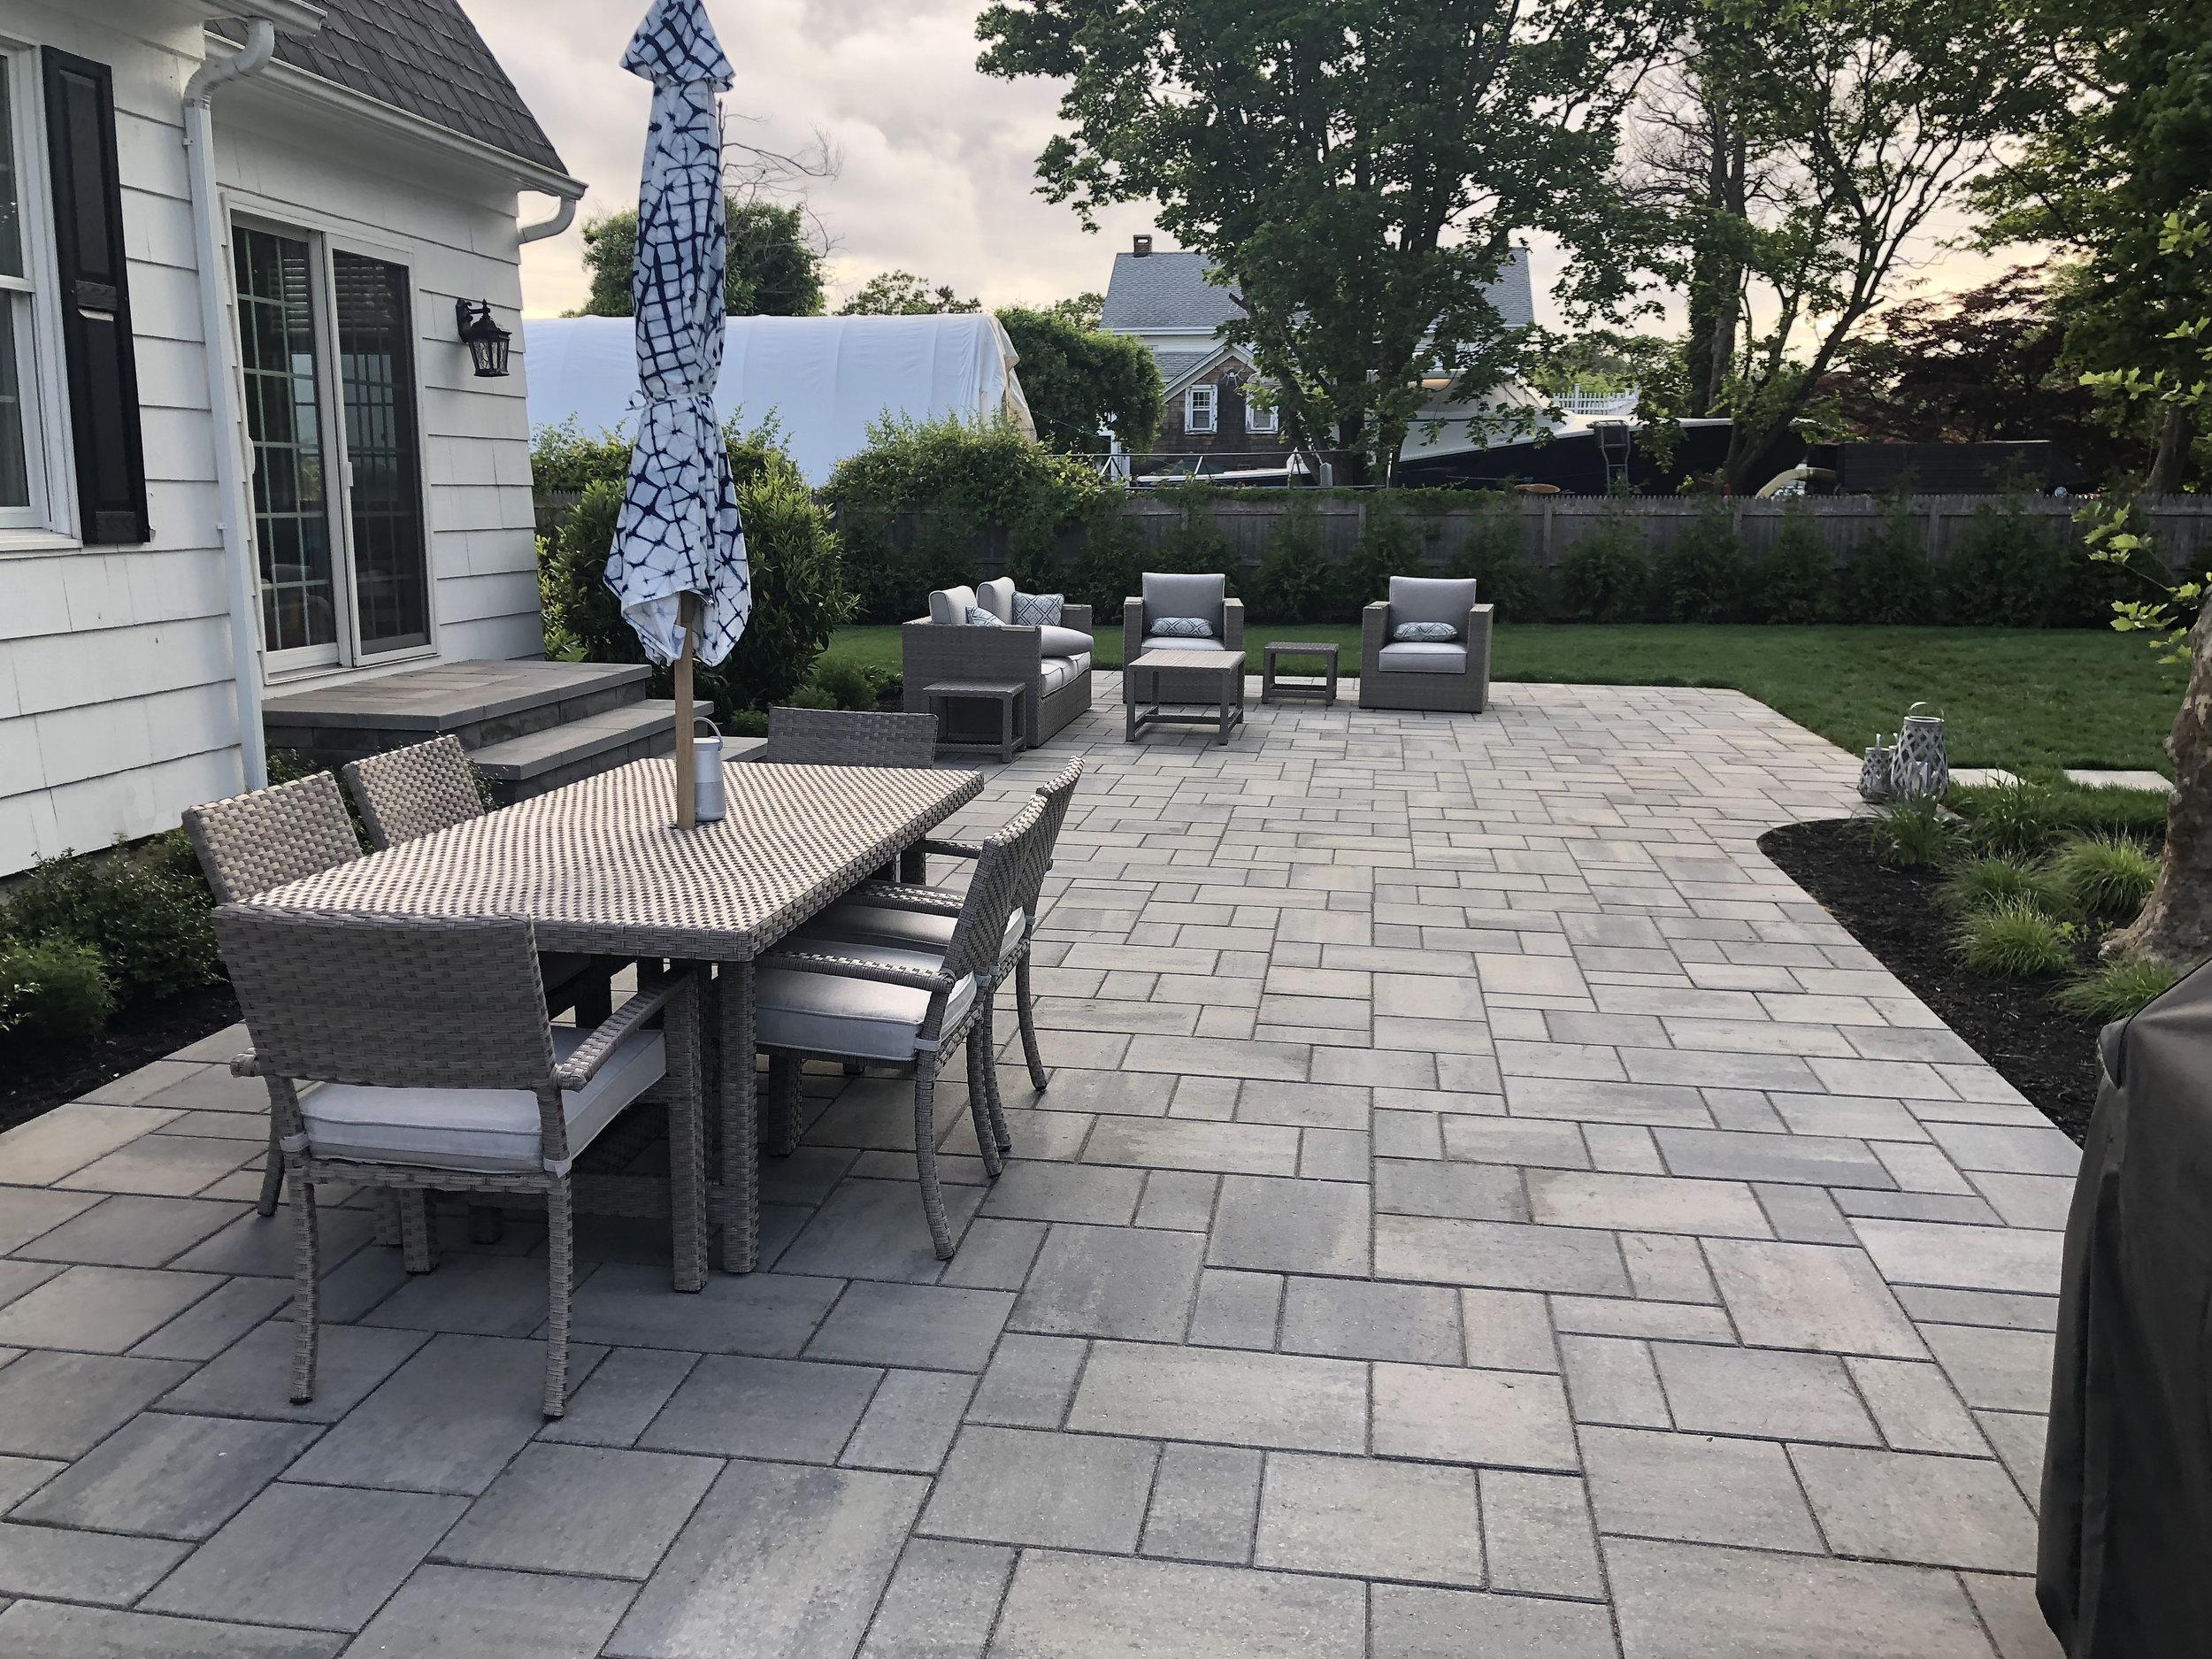 Stylish Outdoor Furniture Options for Various Patio Designs in Southampton, NY